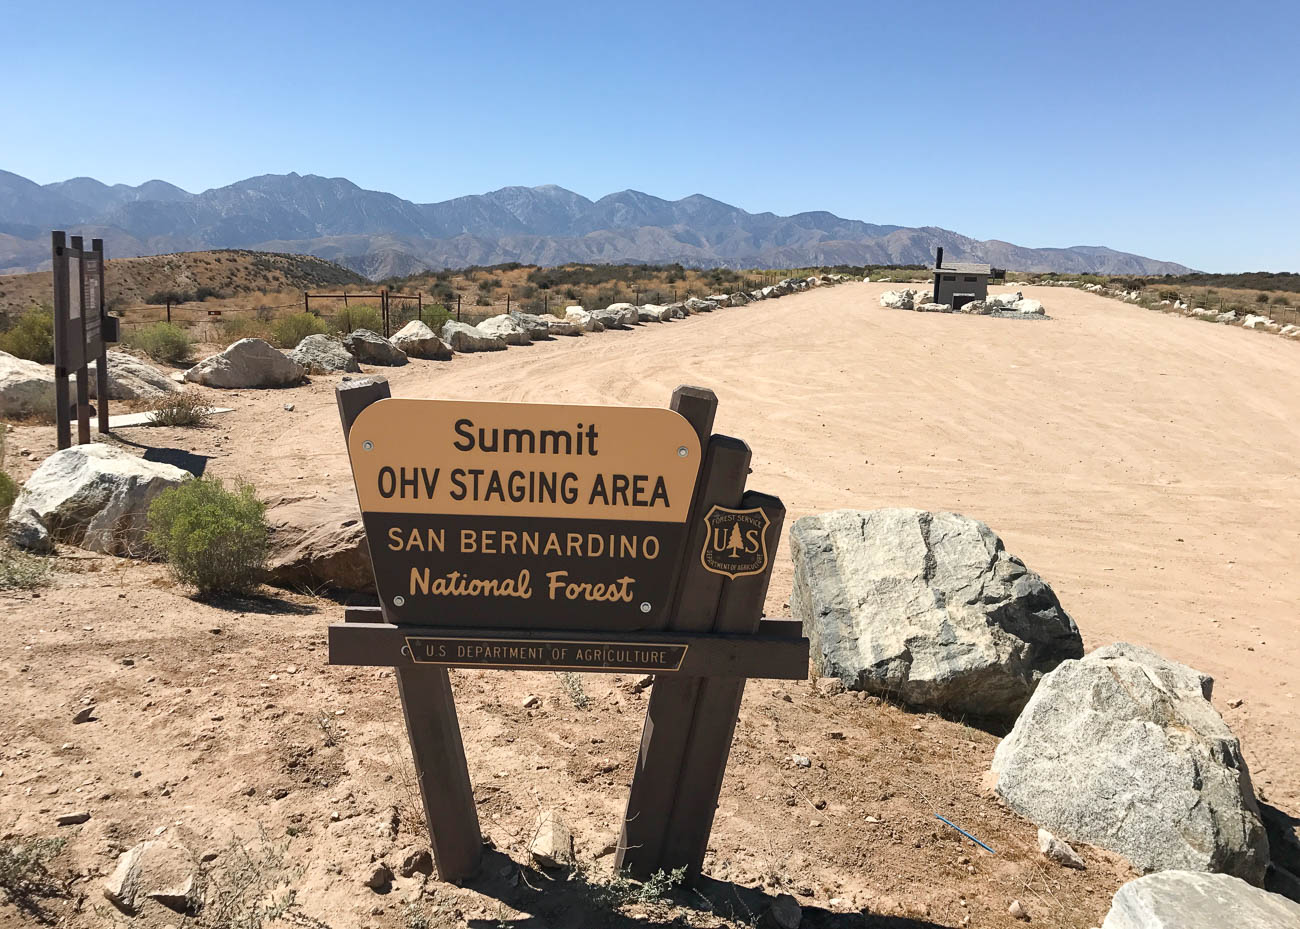 Summit Staging Area